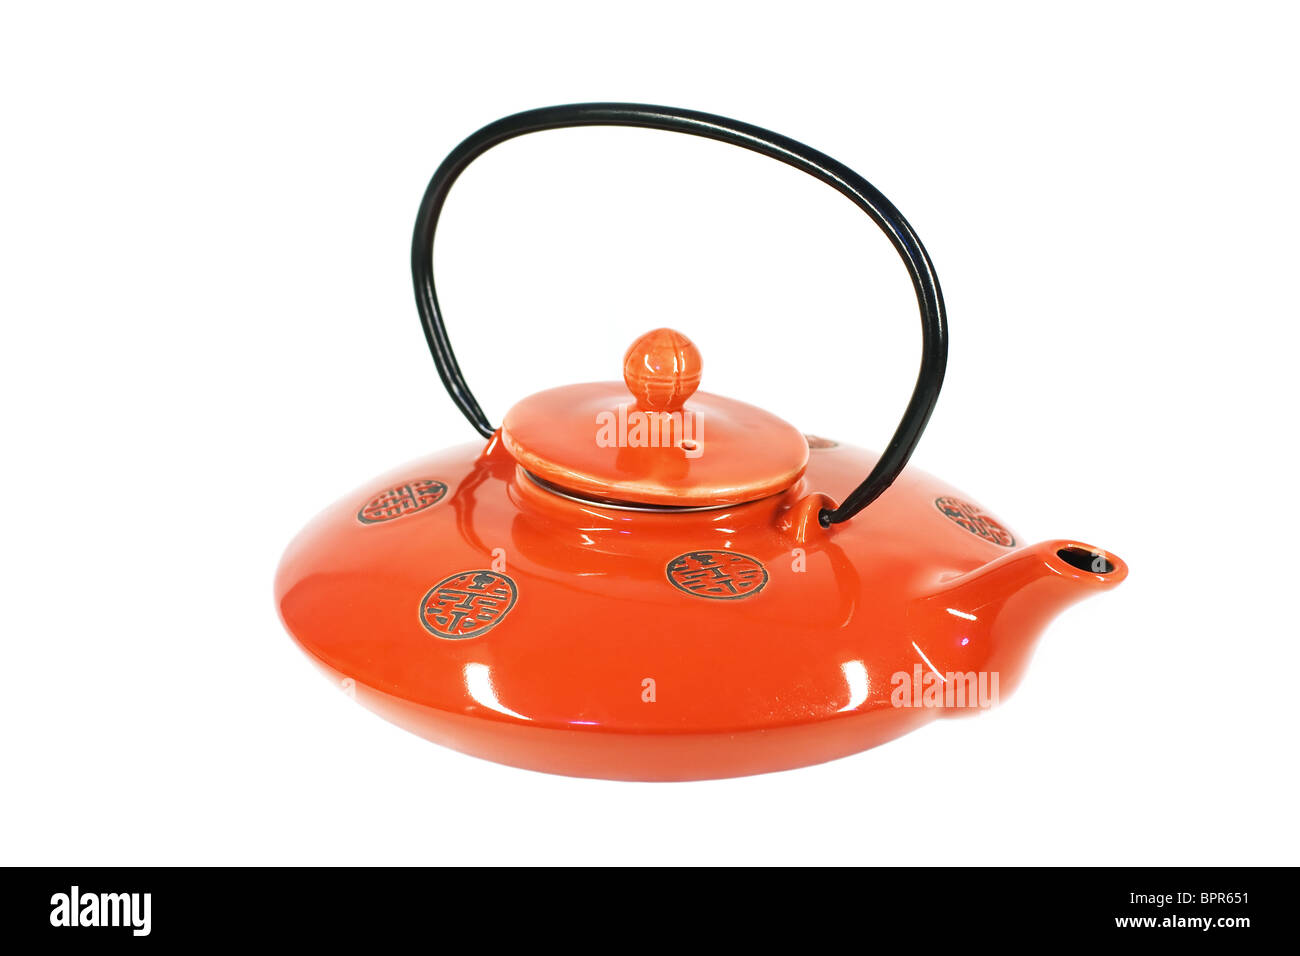 Red Chinese teapot isolated on white background. - Stock Image